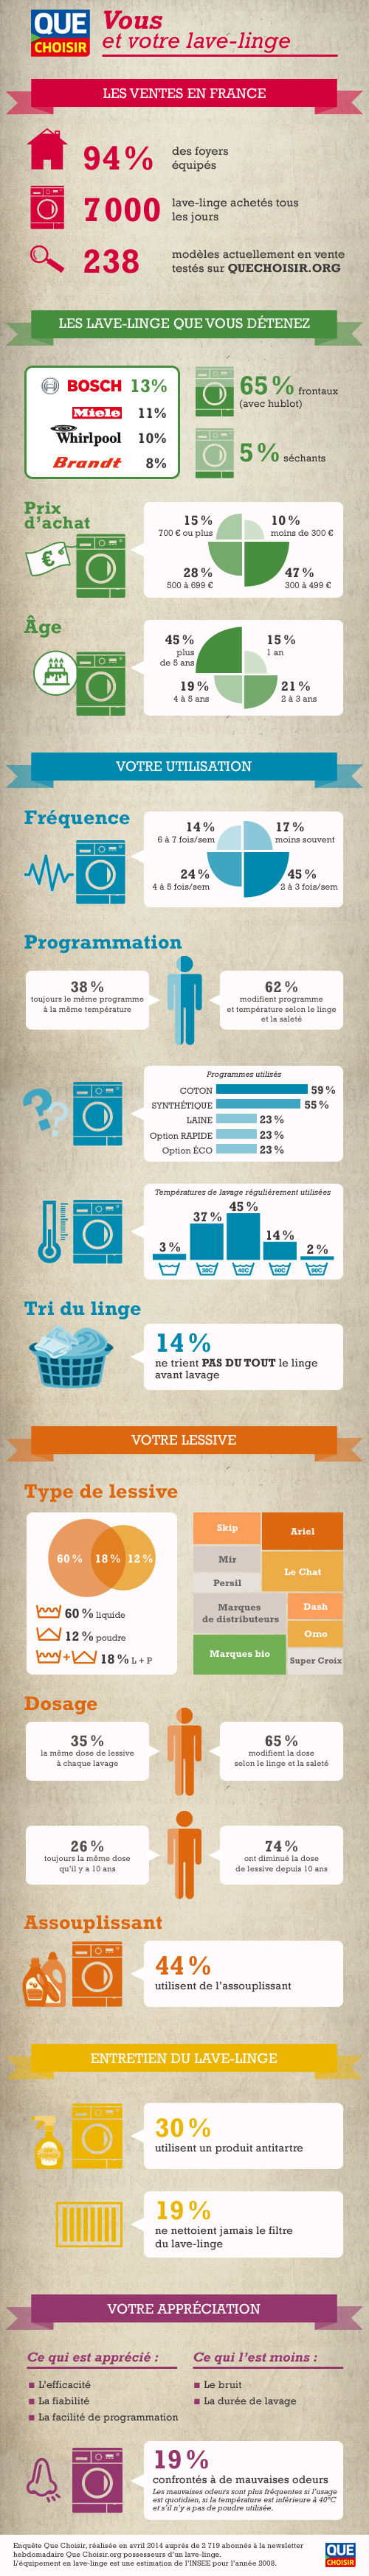 lave linge infographie vous et votre lave linge actualit ufc que choisir. Black Bedroom Furniture Sets. Home Design Ideas